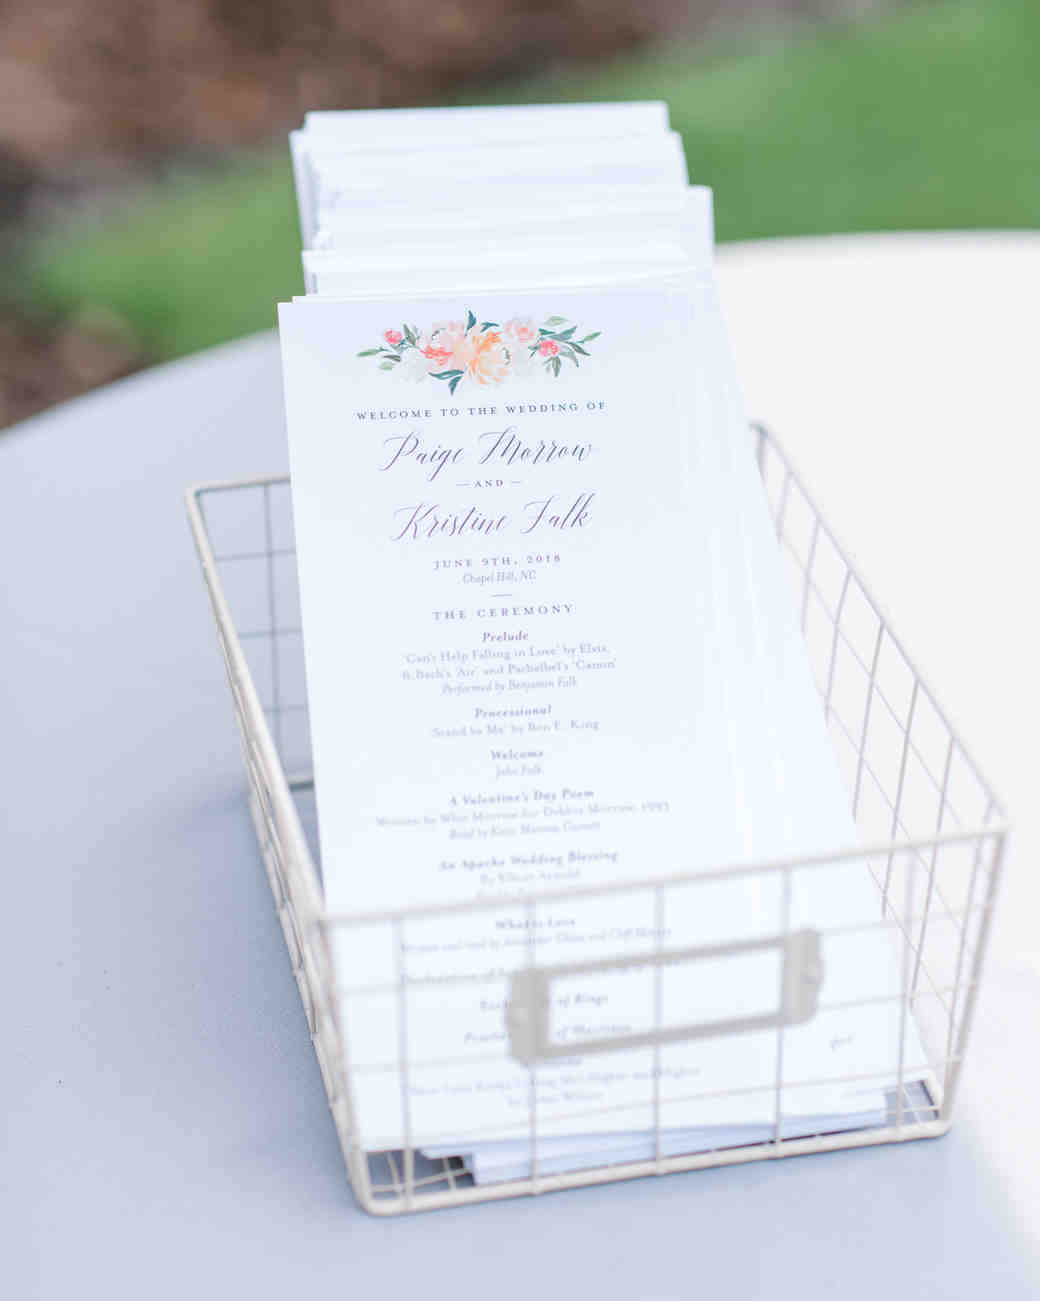 paige and kristine wedding programs